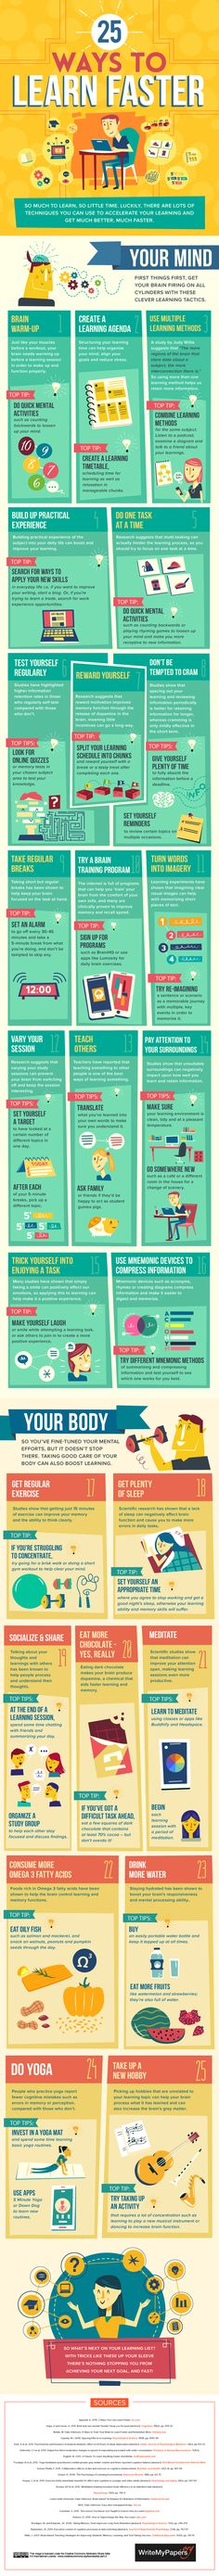 Ways to Learn Faster (Infographic) Try these tips to speed up your cognitive processes. MoreTry these tips to speed up your cognitive processes. E Learning, Learning Styles, Learning Methods, Learning Techniques, Study Techniques, Blended Learning, Lerntyp Test, Learn Faster, Study Help